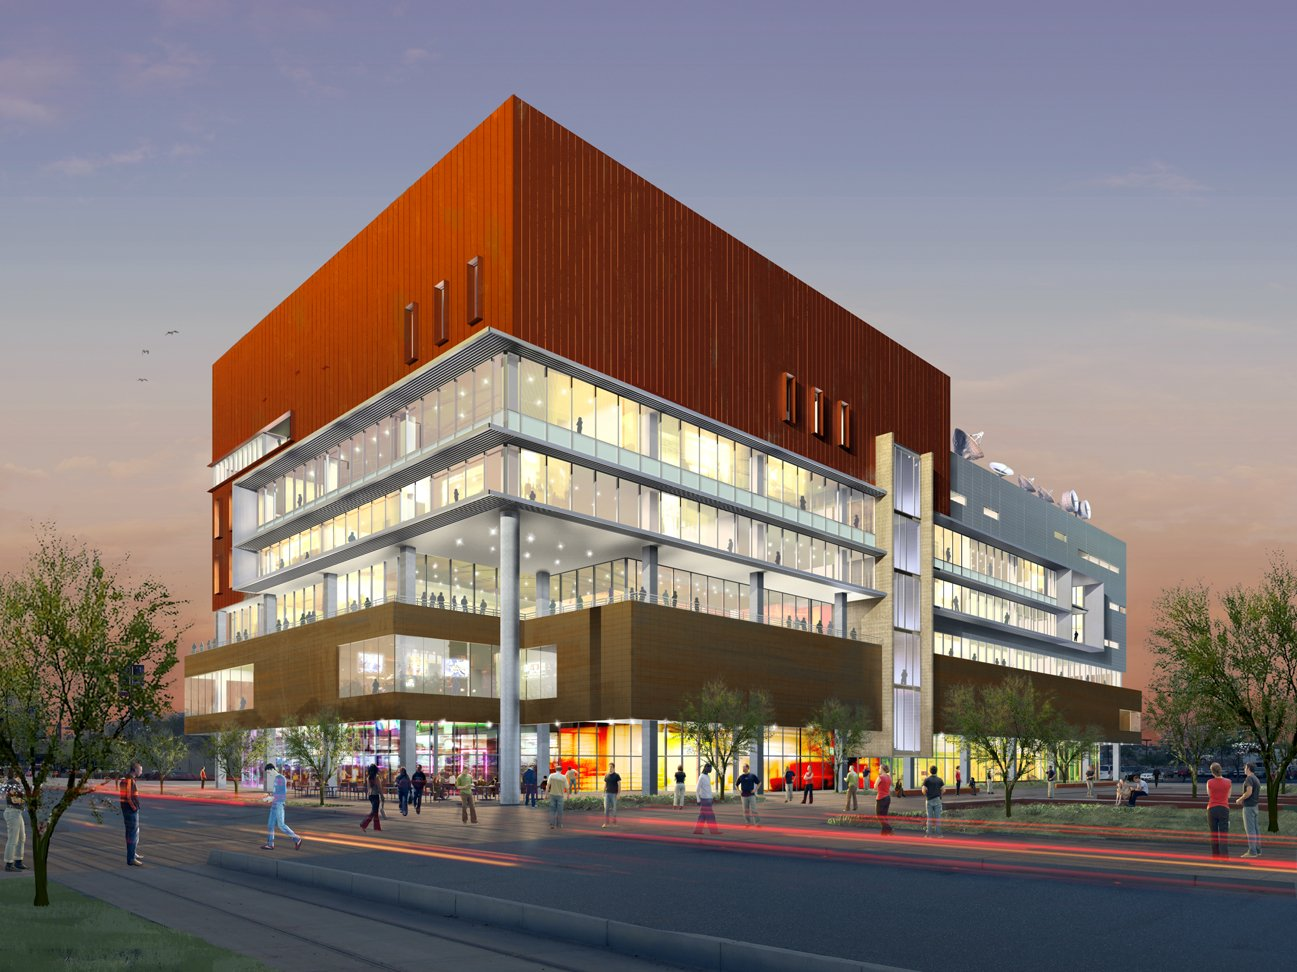 Concept design for the building before it finished construction in 2008.